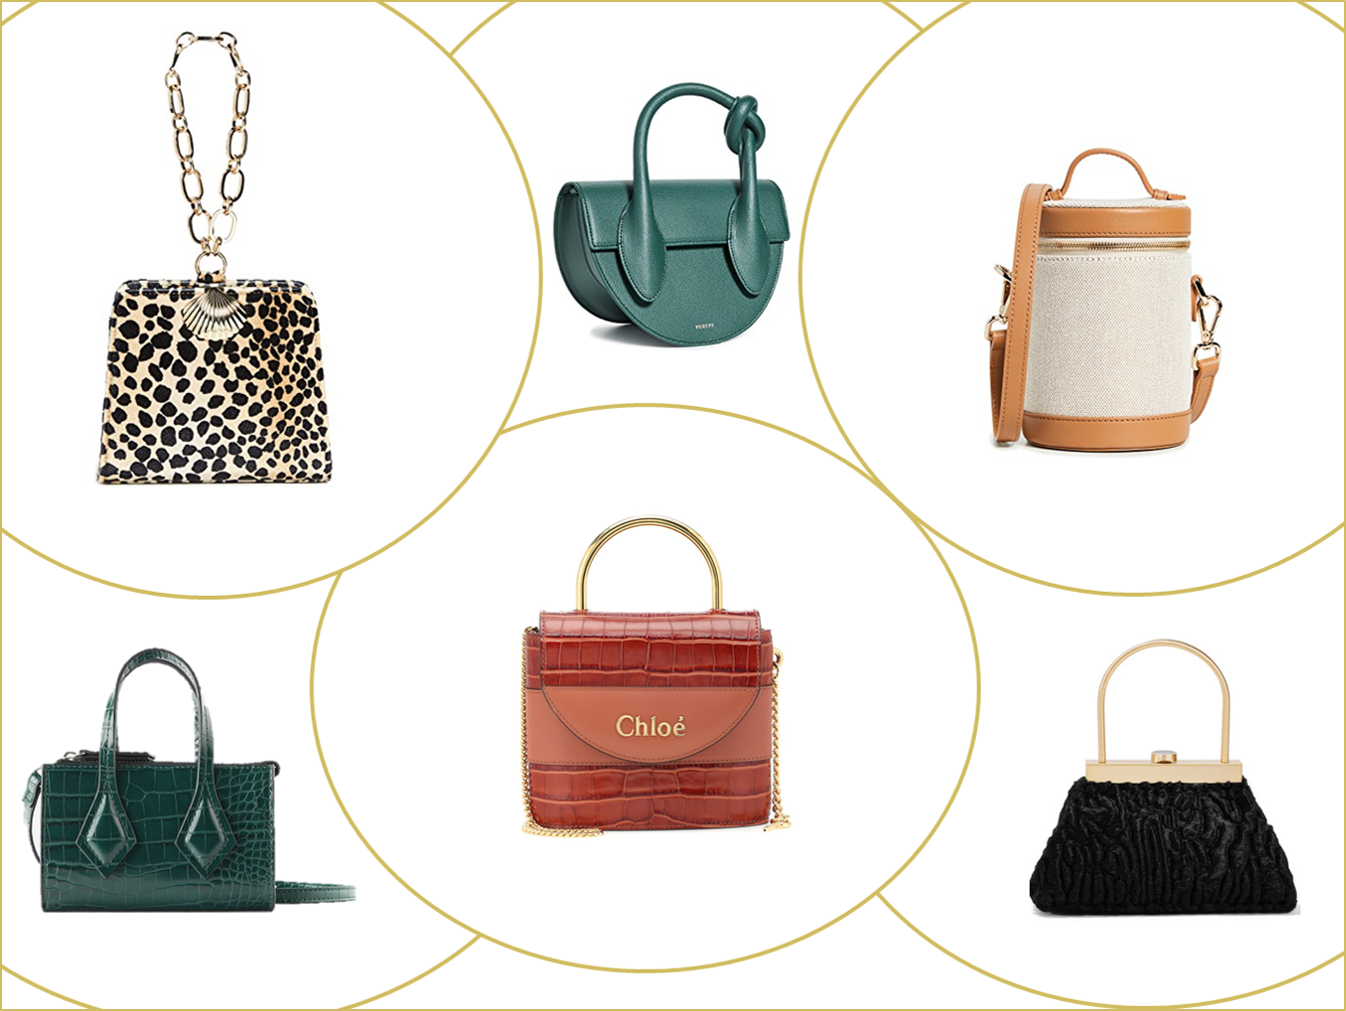 The mini bags trend: Are bags getting smaller and smaller?